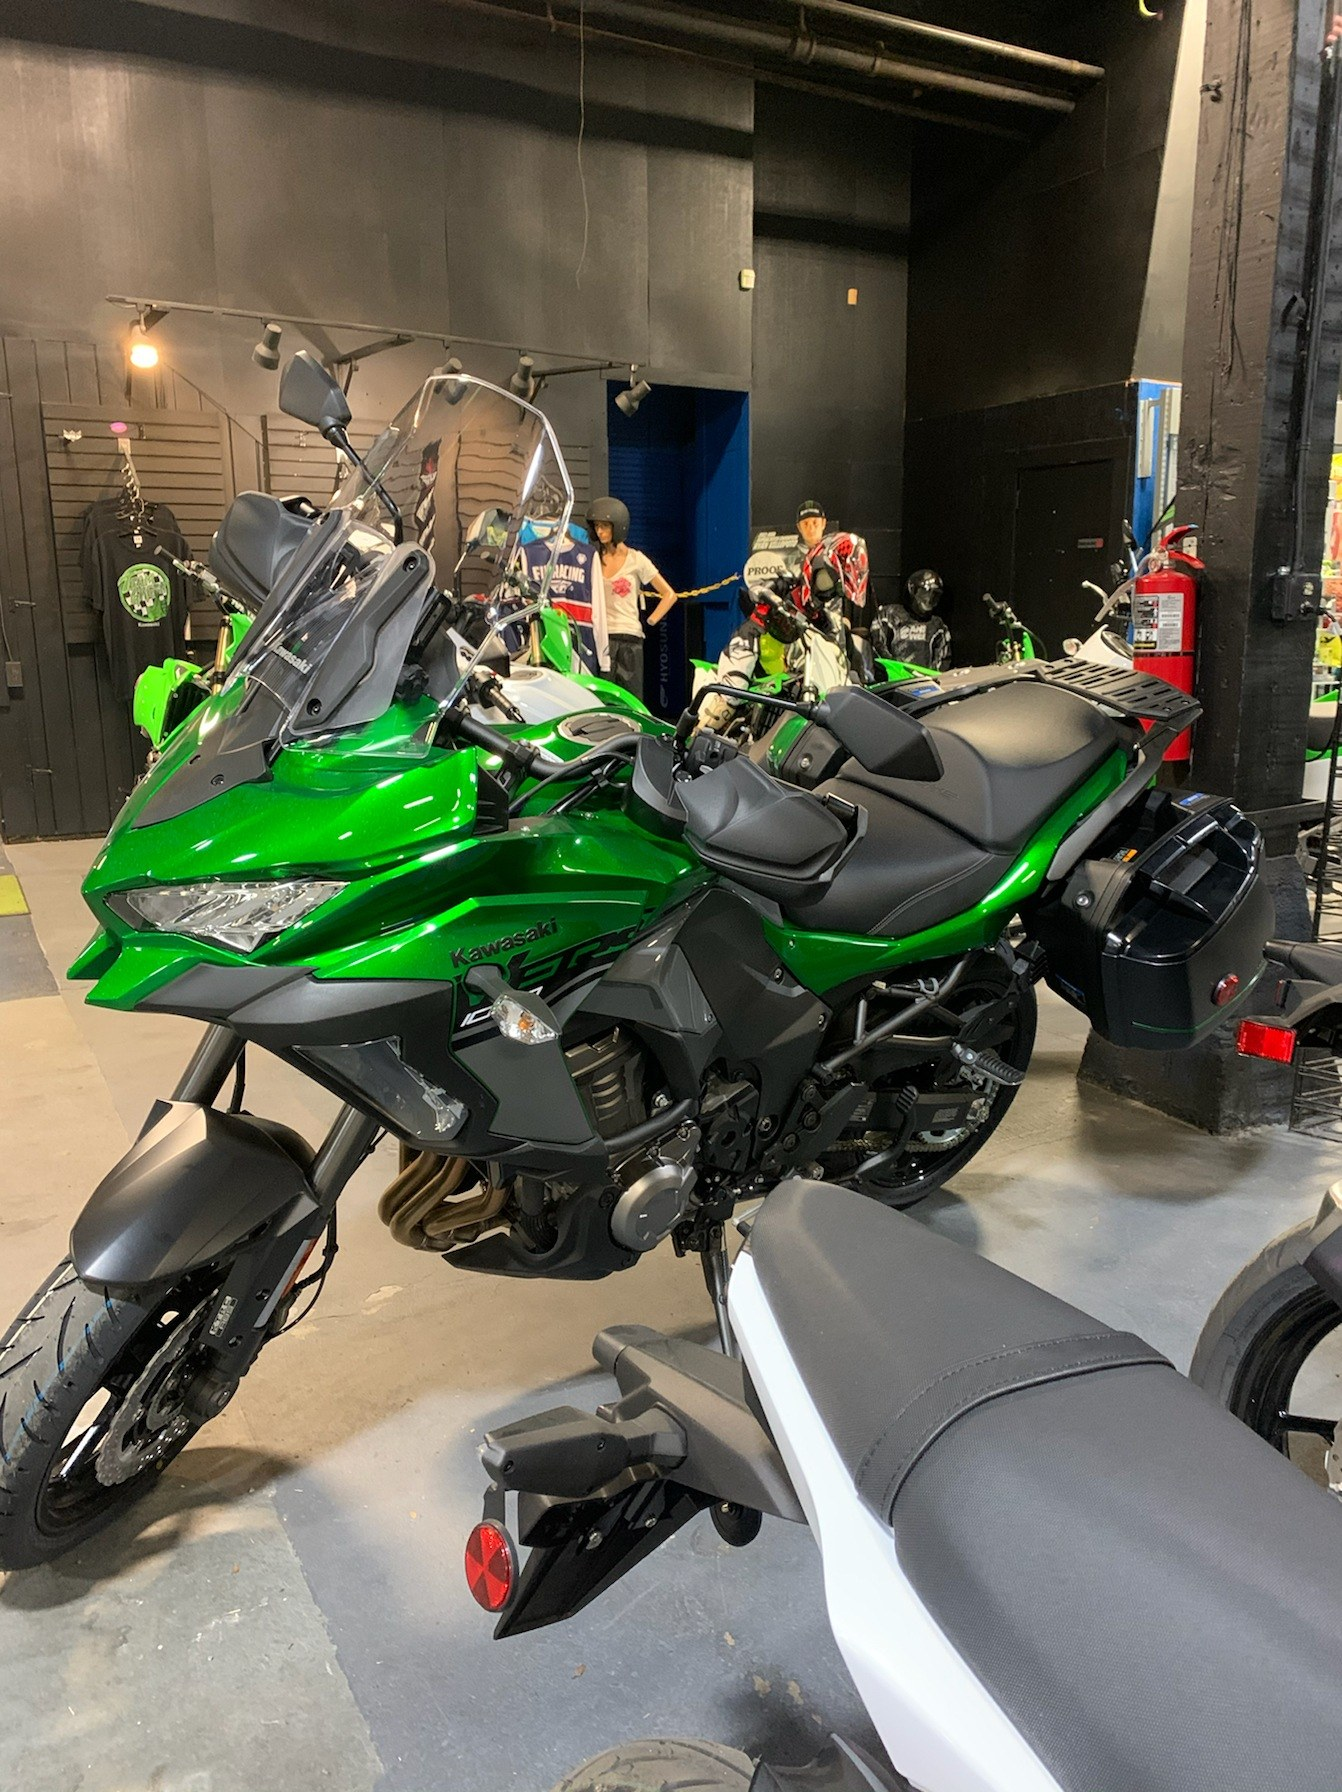 2020 Kawasaki VERSYS 1000 SE LT in Kingsport, Tennessee - Photo 6